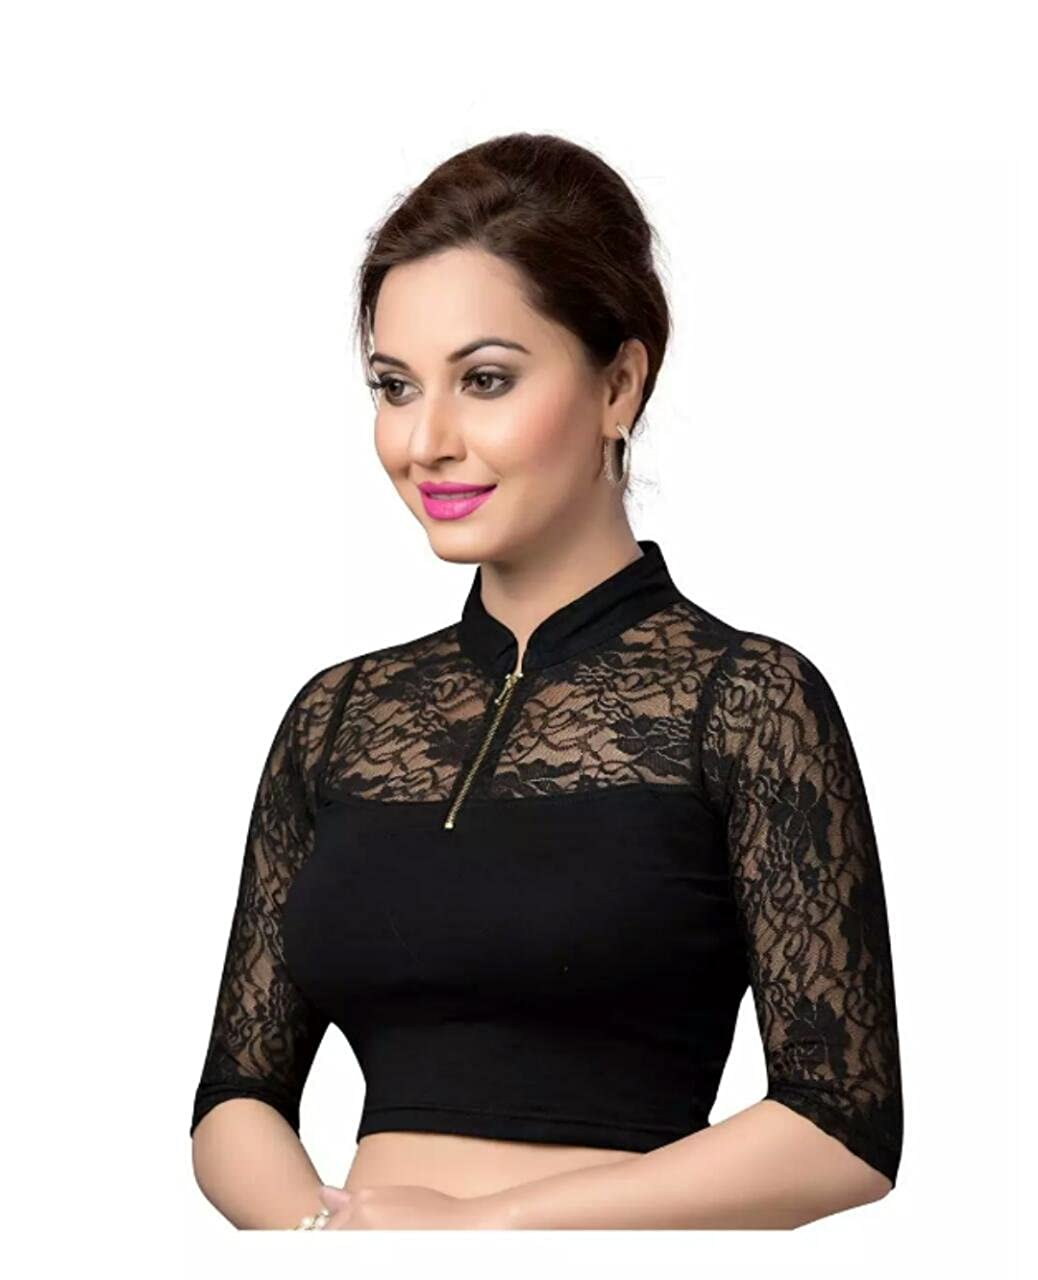 Elflady Black Collar Neck Women Top cum Blouse (pack of 1): Amazon.in:  Clothing & Accessories